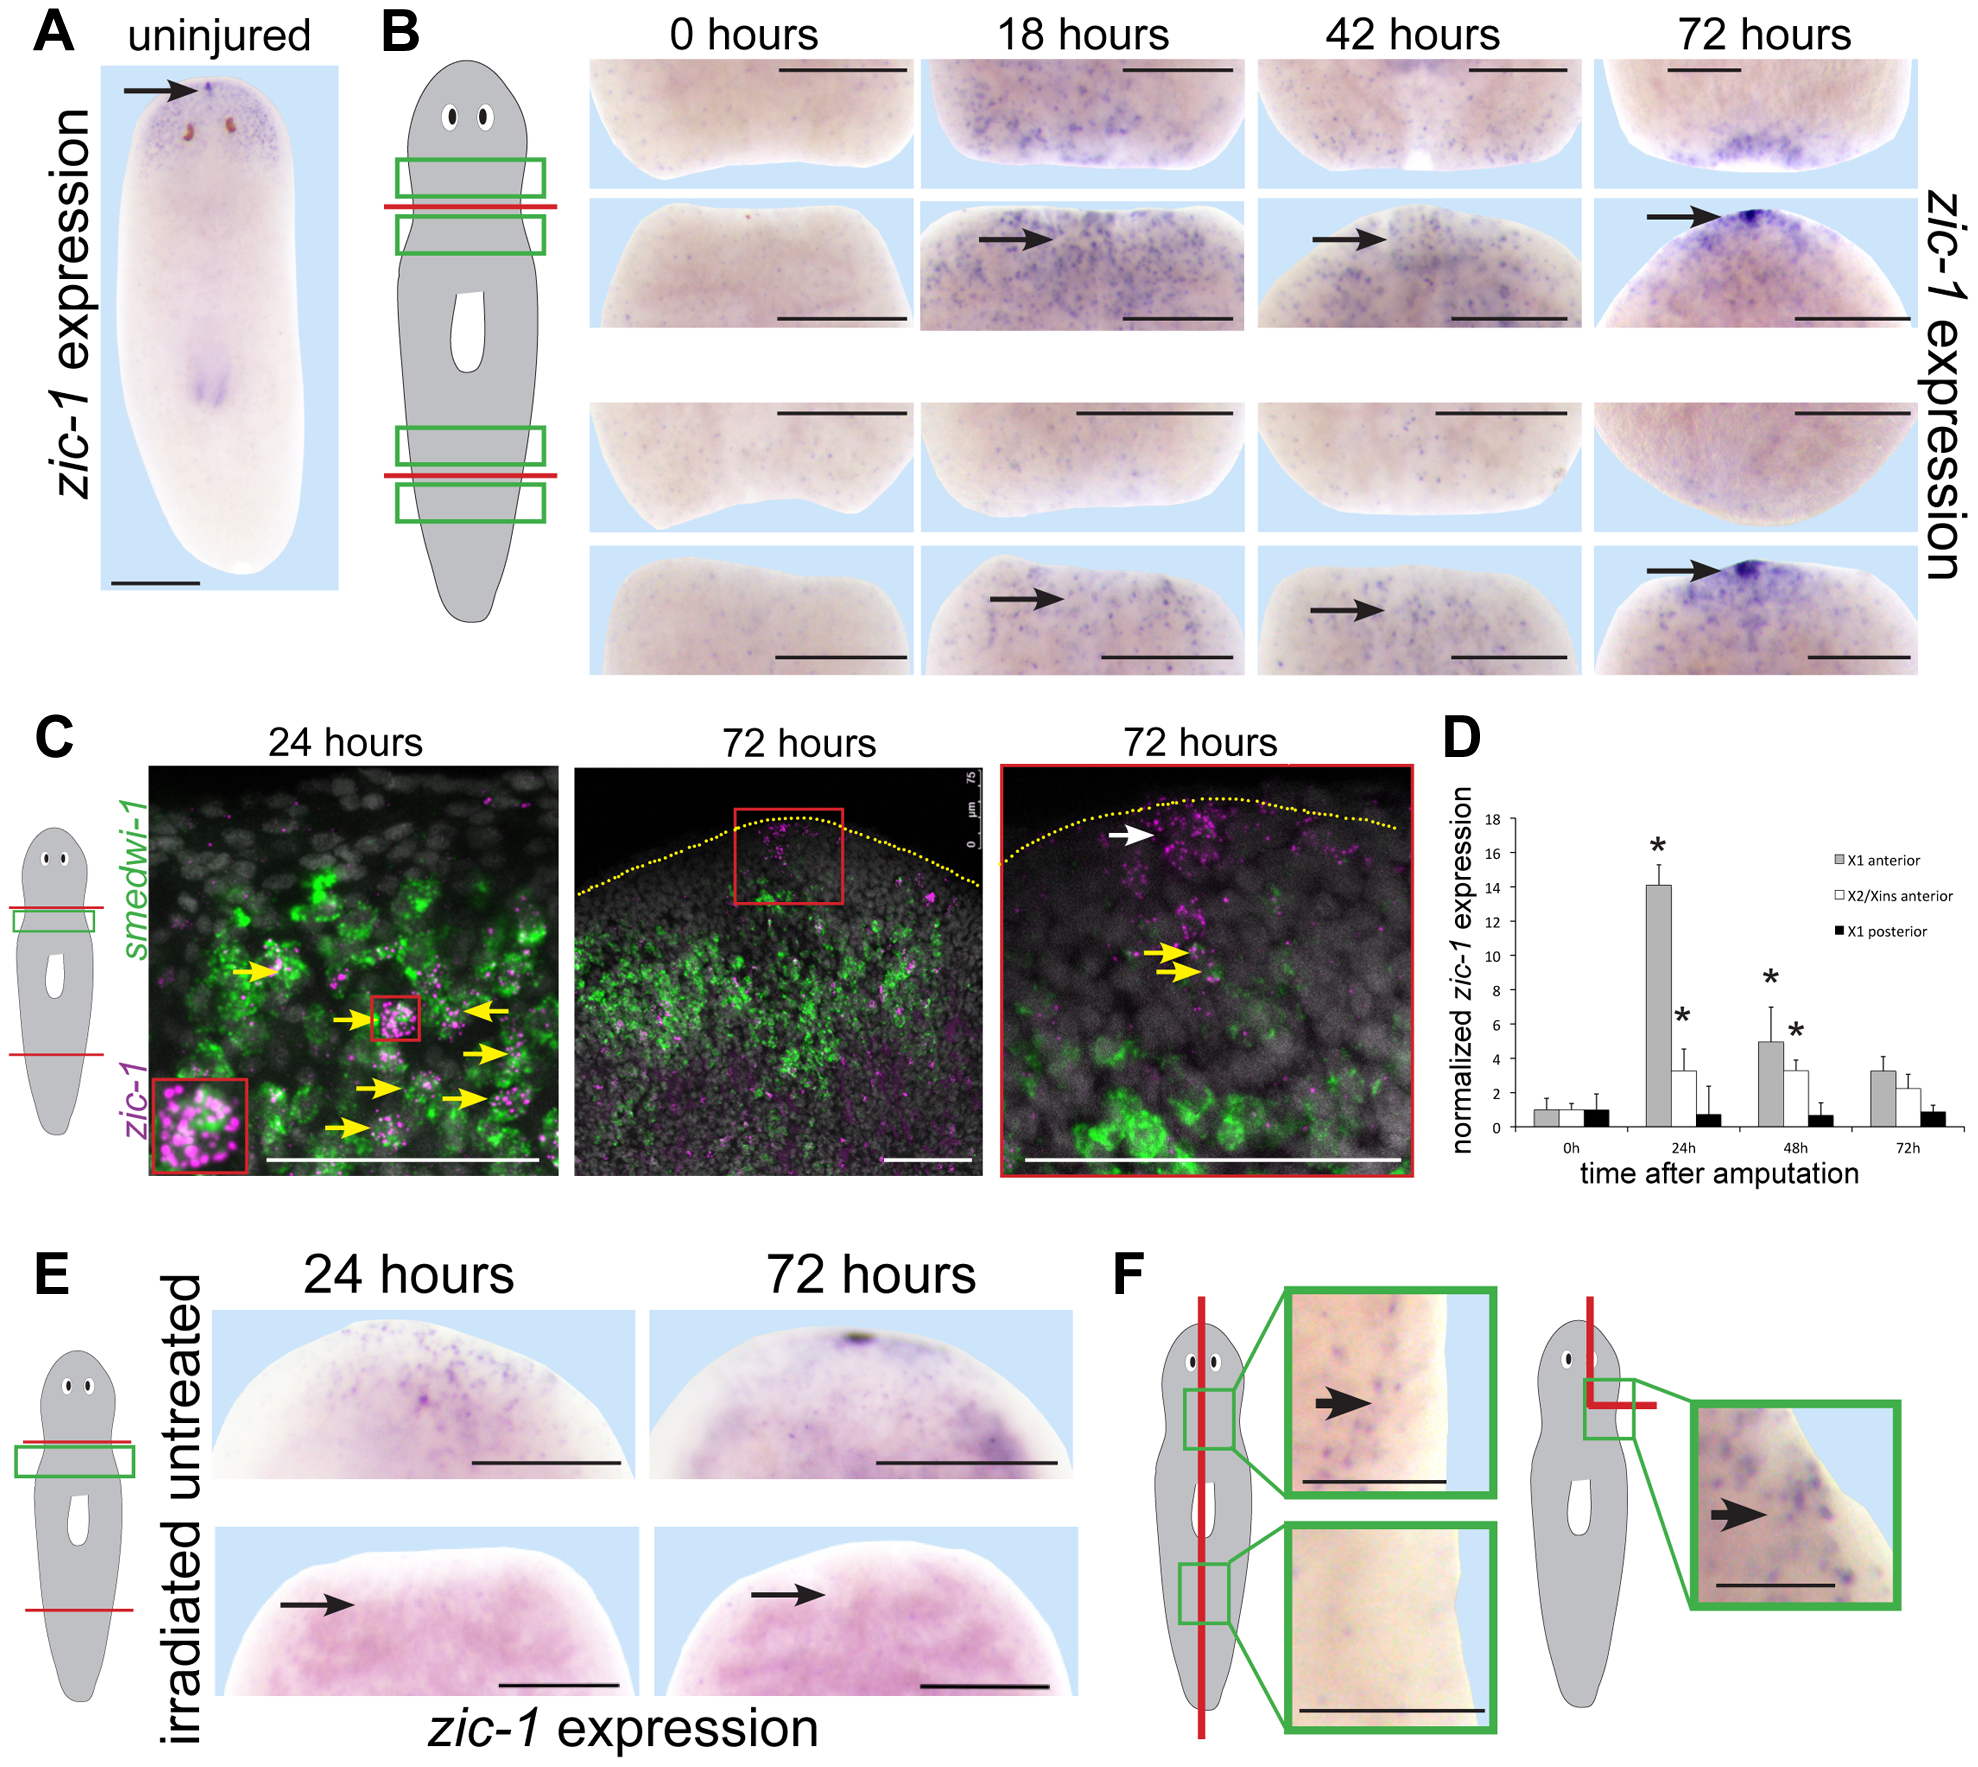 Injury induces expression of <i>zic-1</i> in neoblasts and in the regenerating anterior pole.